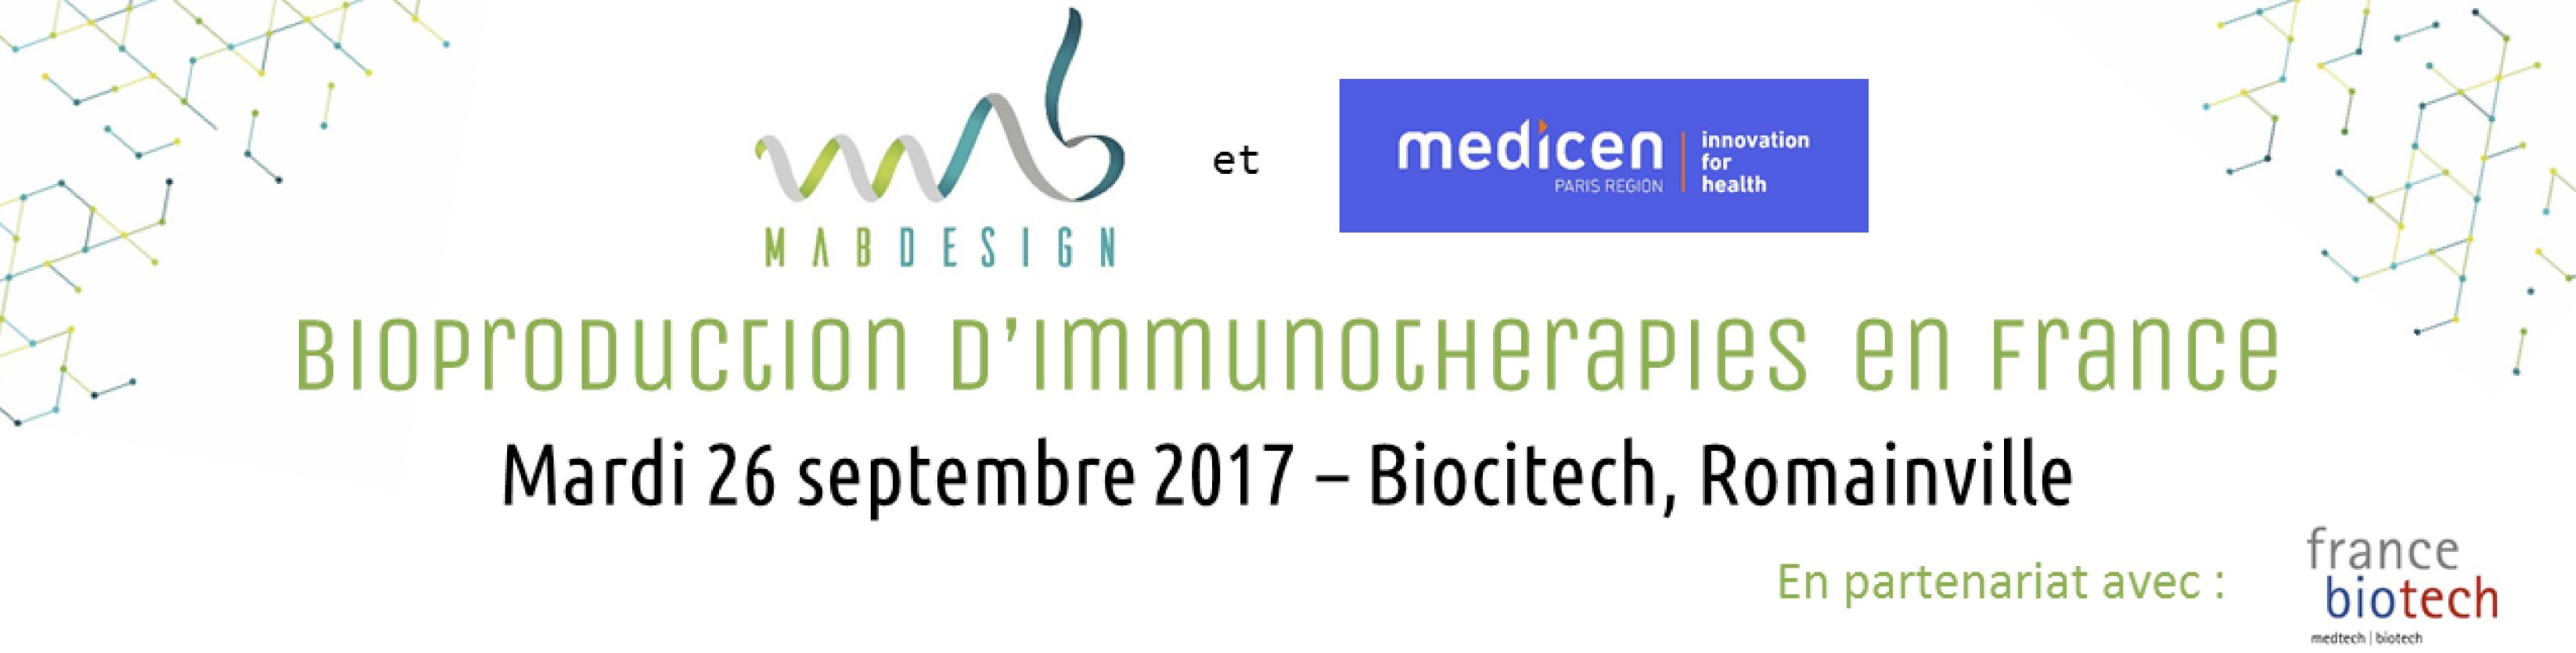 tebu-bio will be at Bioproduction d'Immunothérapies en France - MabDesign & Medicen